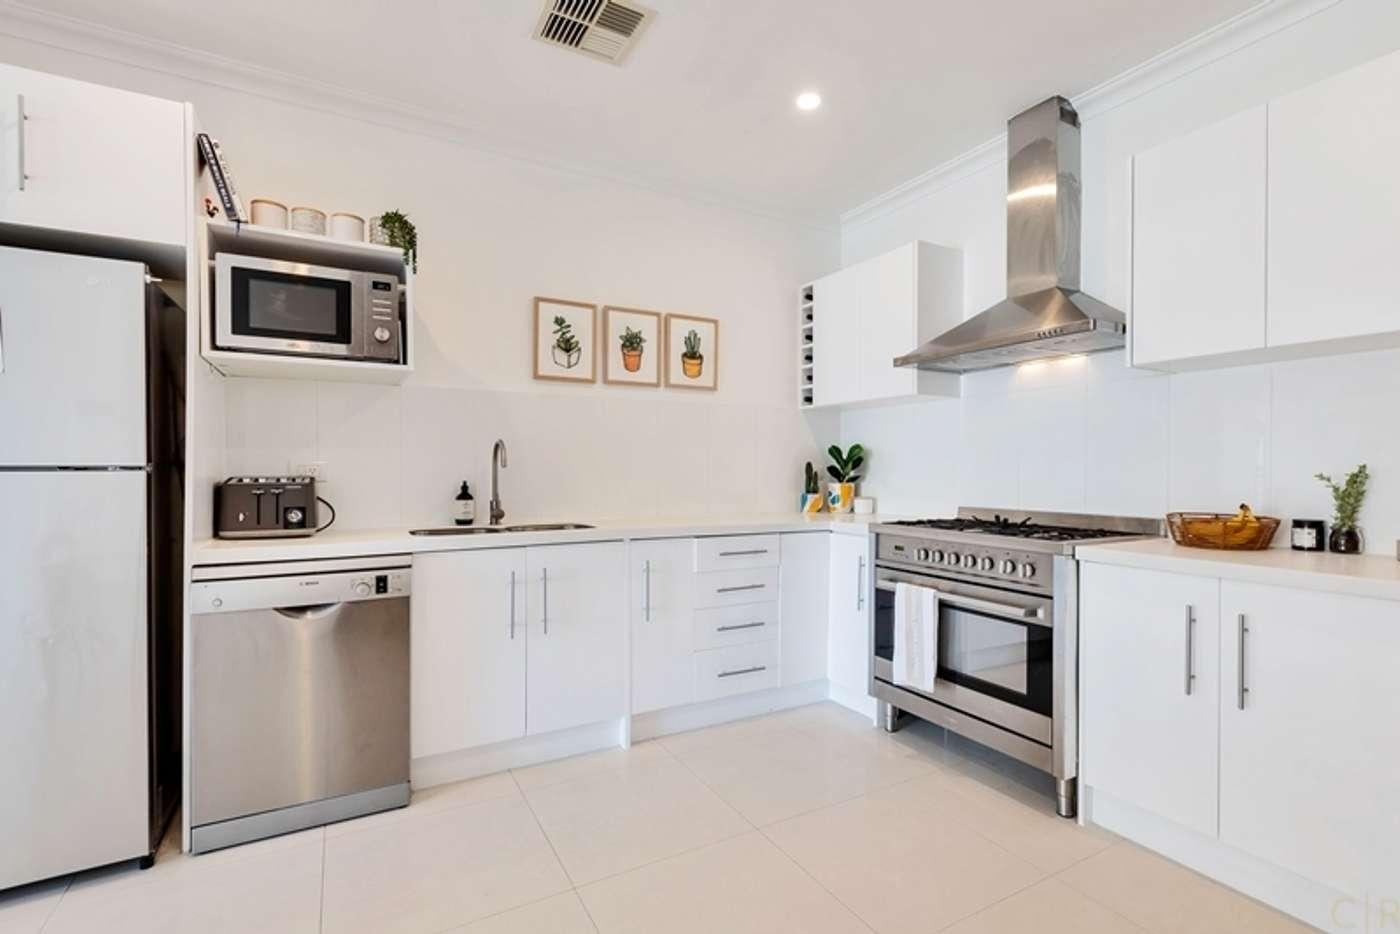 Sixth view of Homely apartment listing, 1102/39 Grenfell Street, Adelaide SA 5000